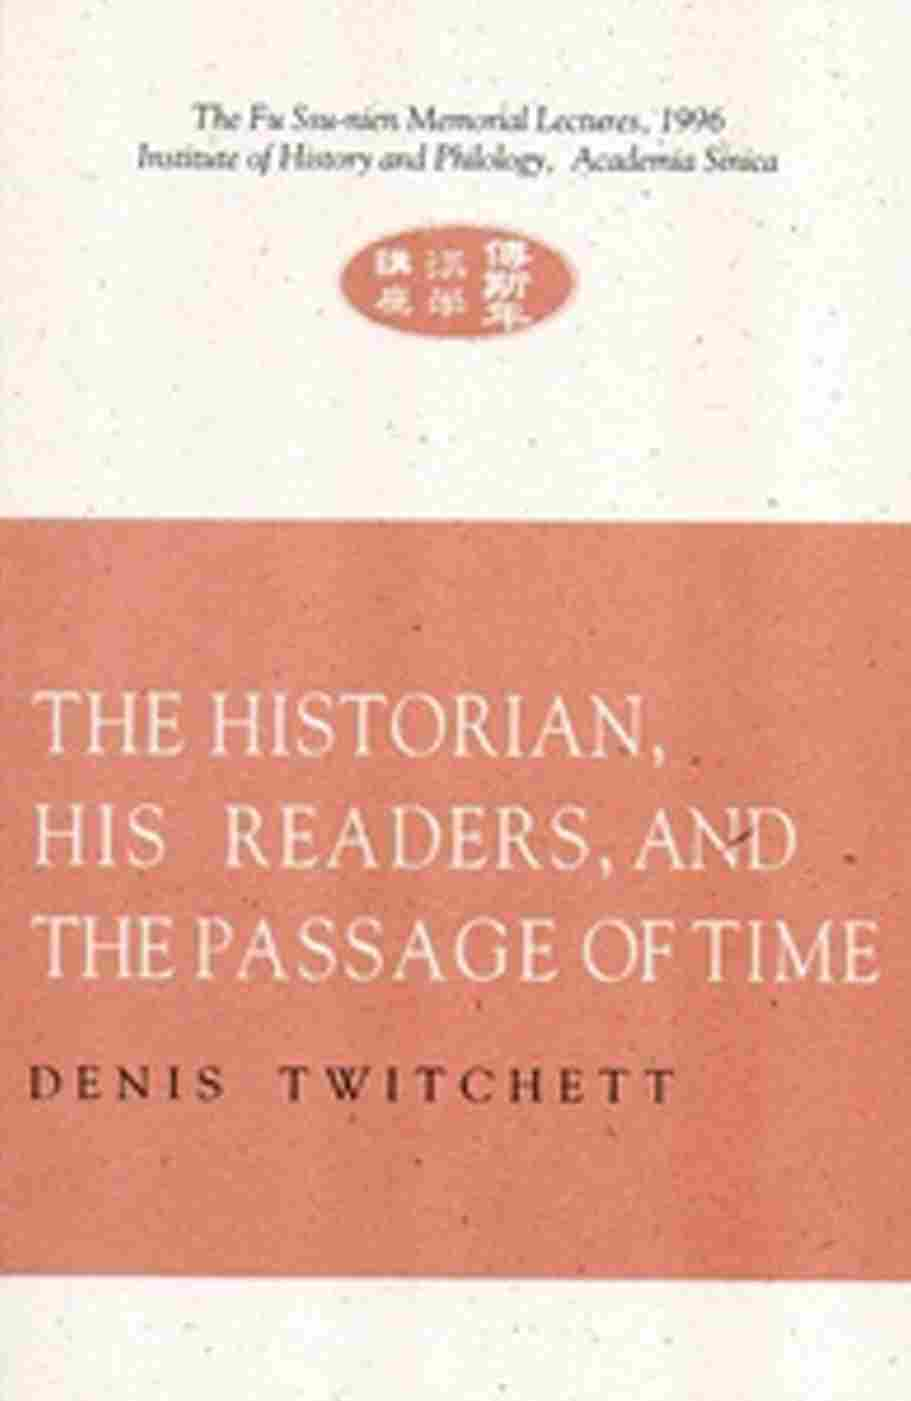 THE HISTORIAN,HIS READERS,AND THE PASSAGE OF